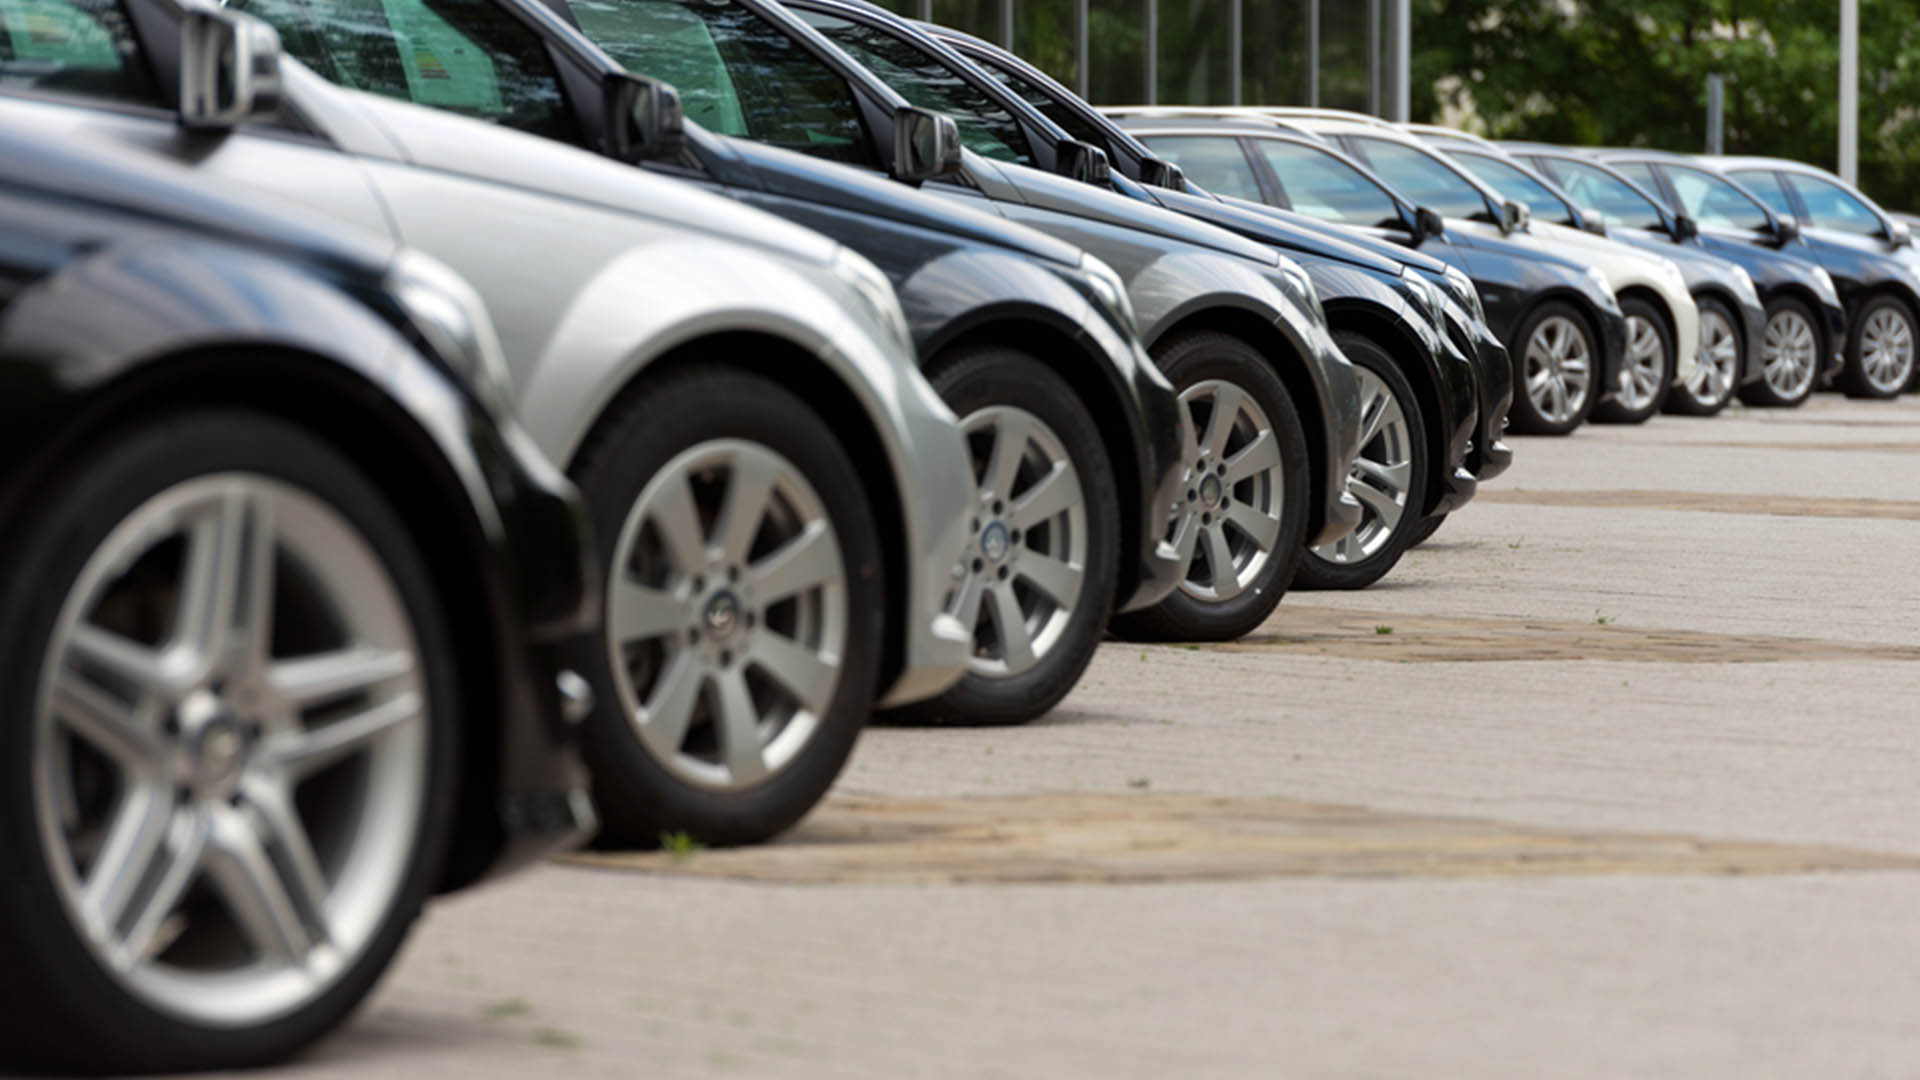 Top carmakers in India develop own real estate, invest in own properties